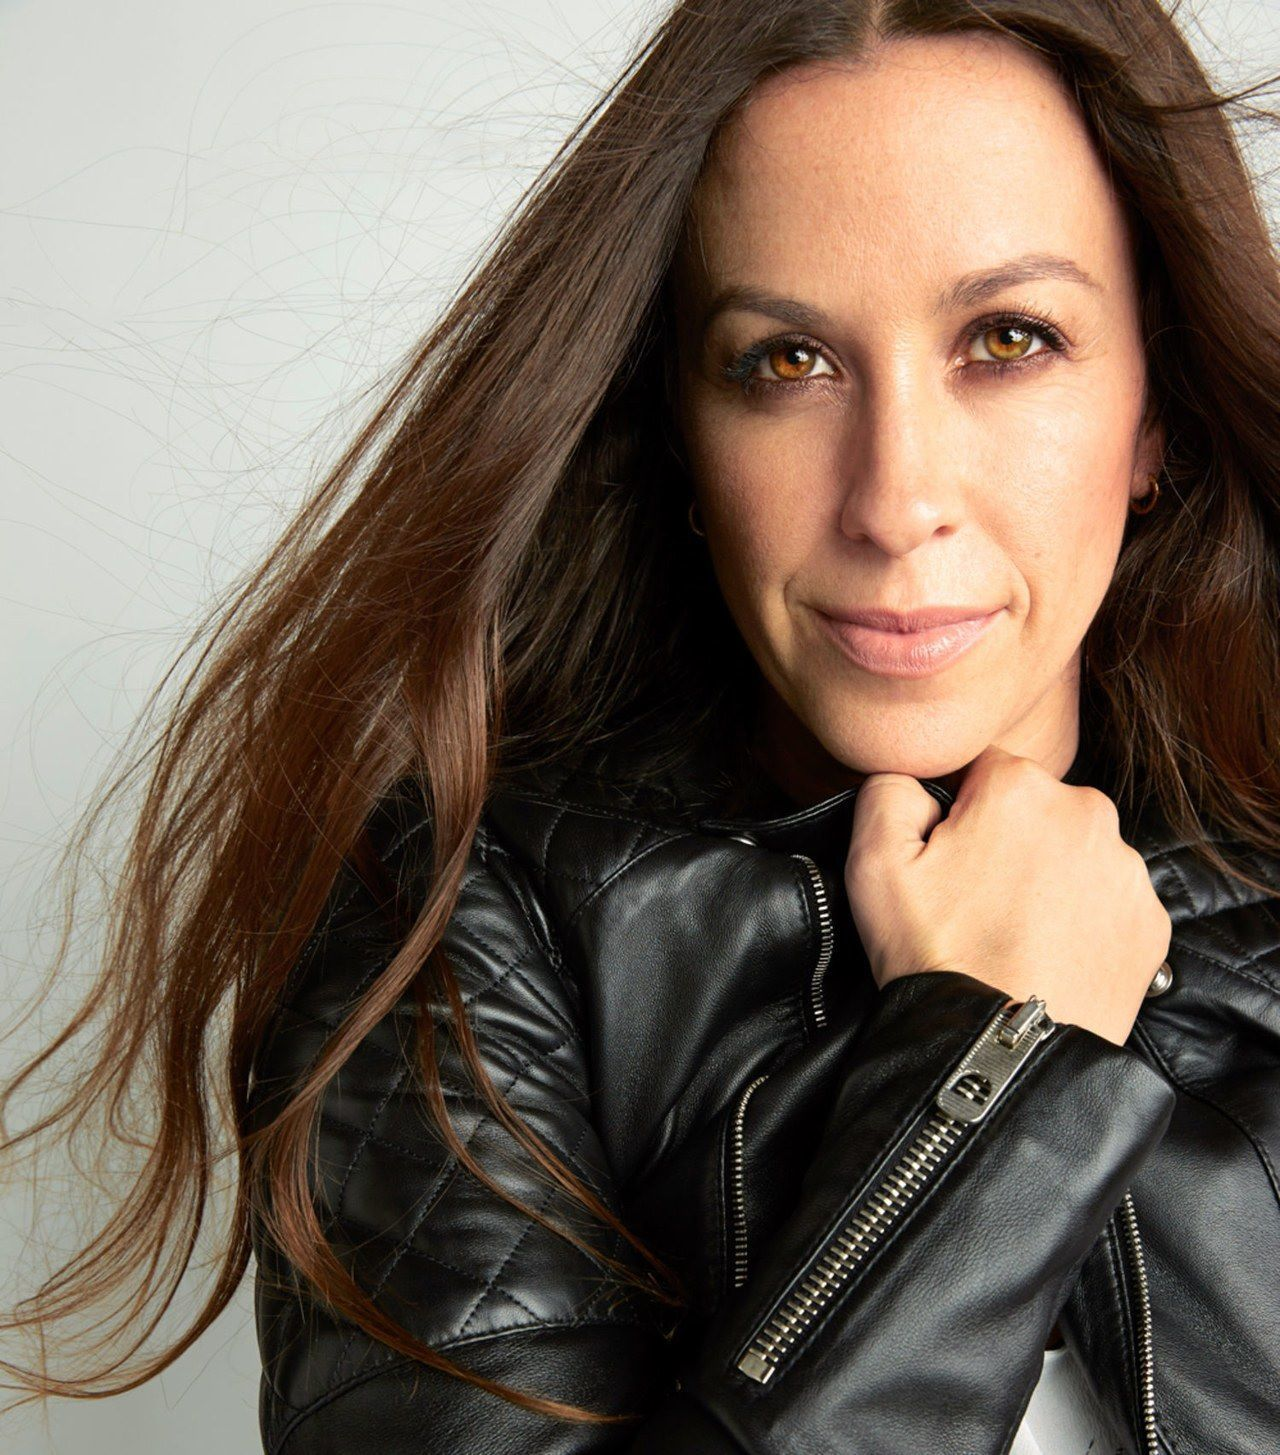 Alanis Morissette To Perform At Trop Arts